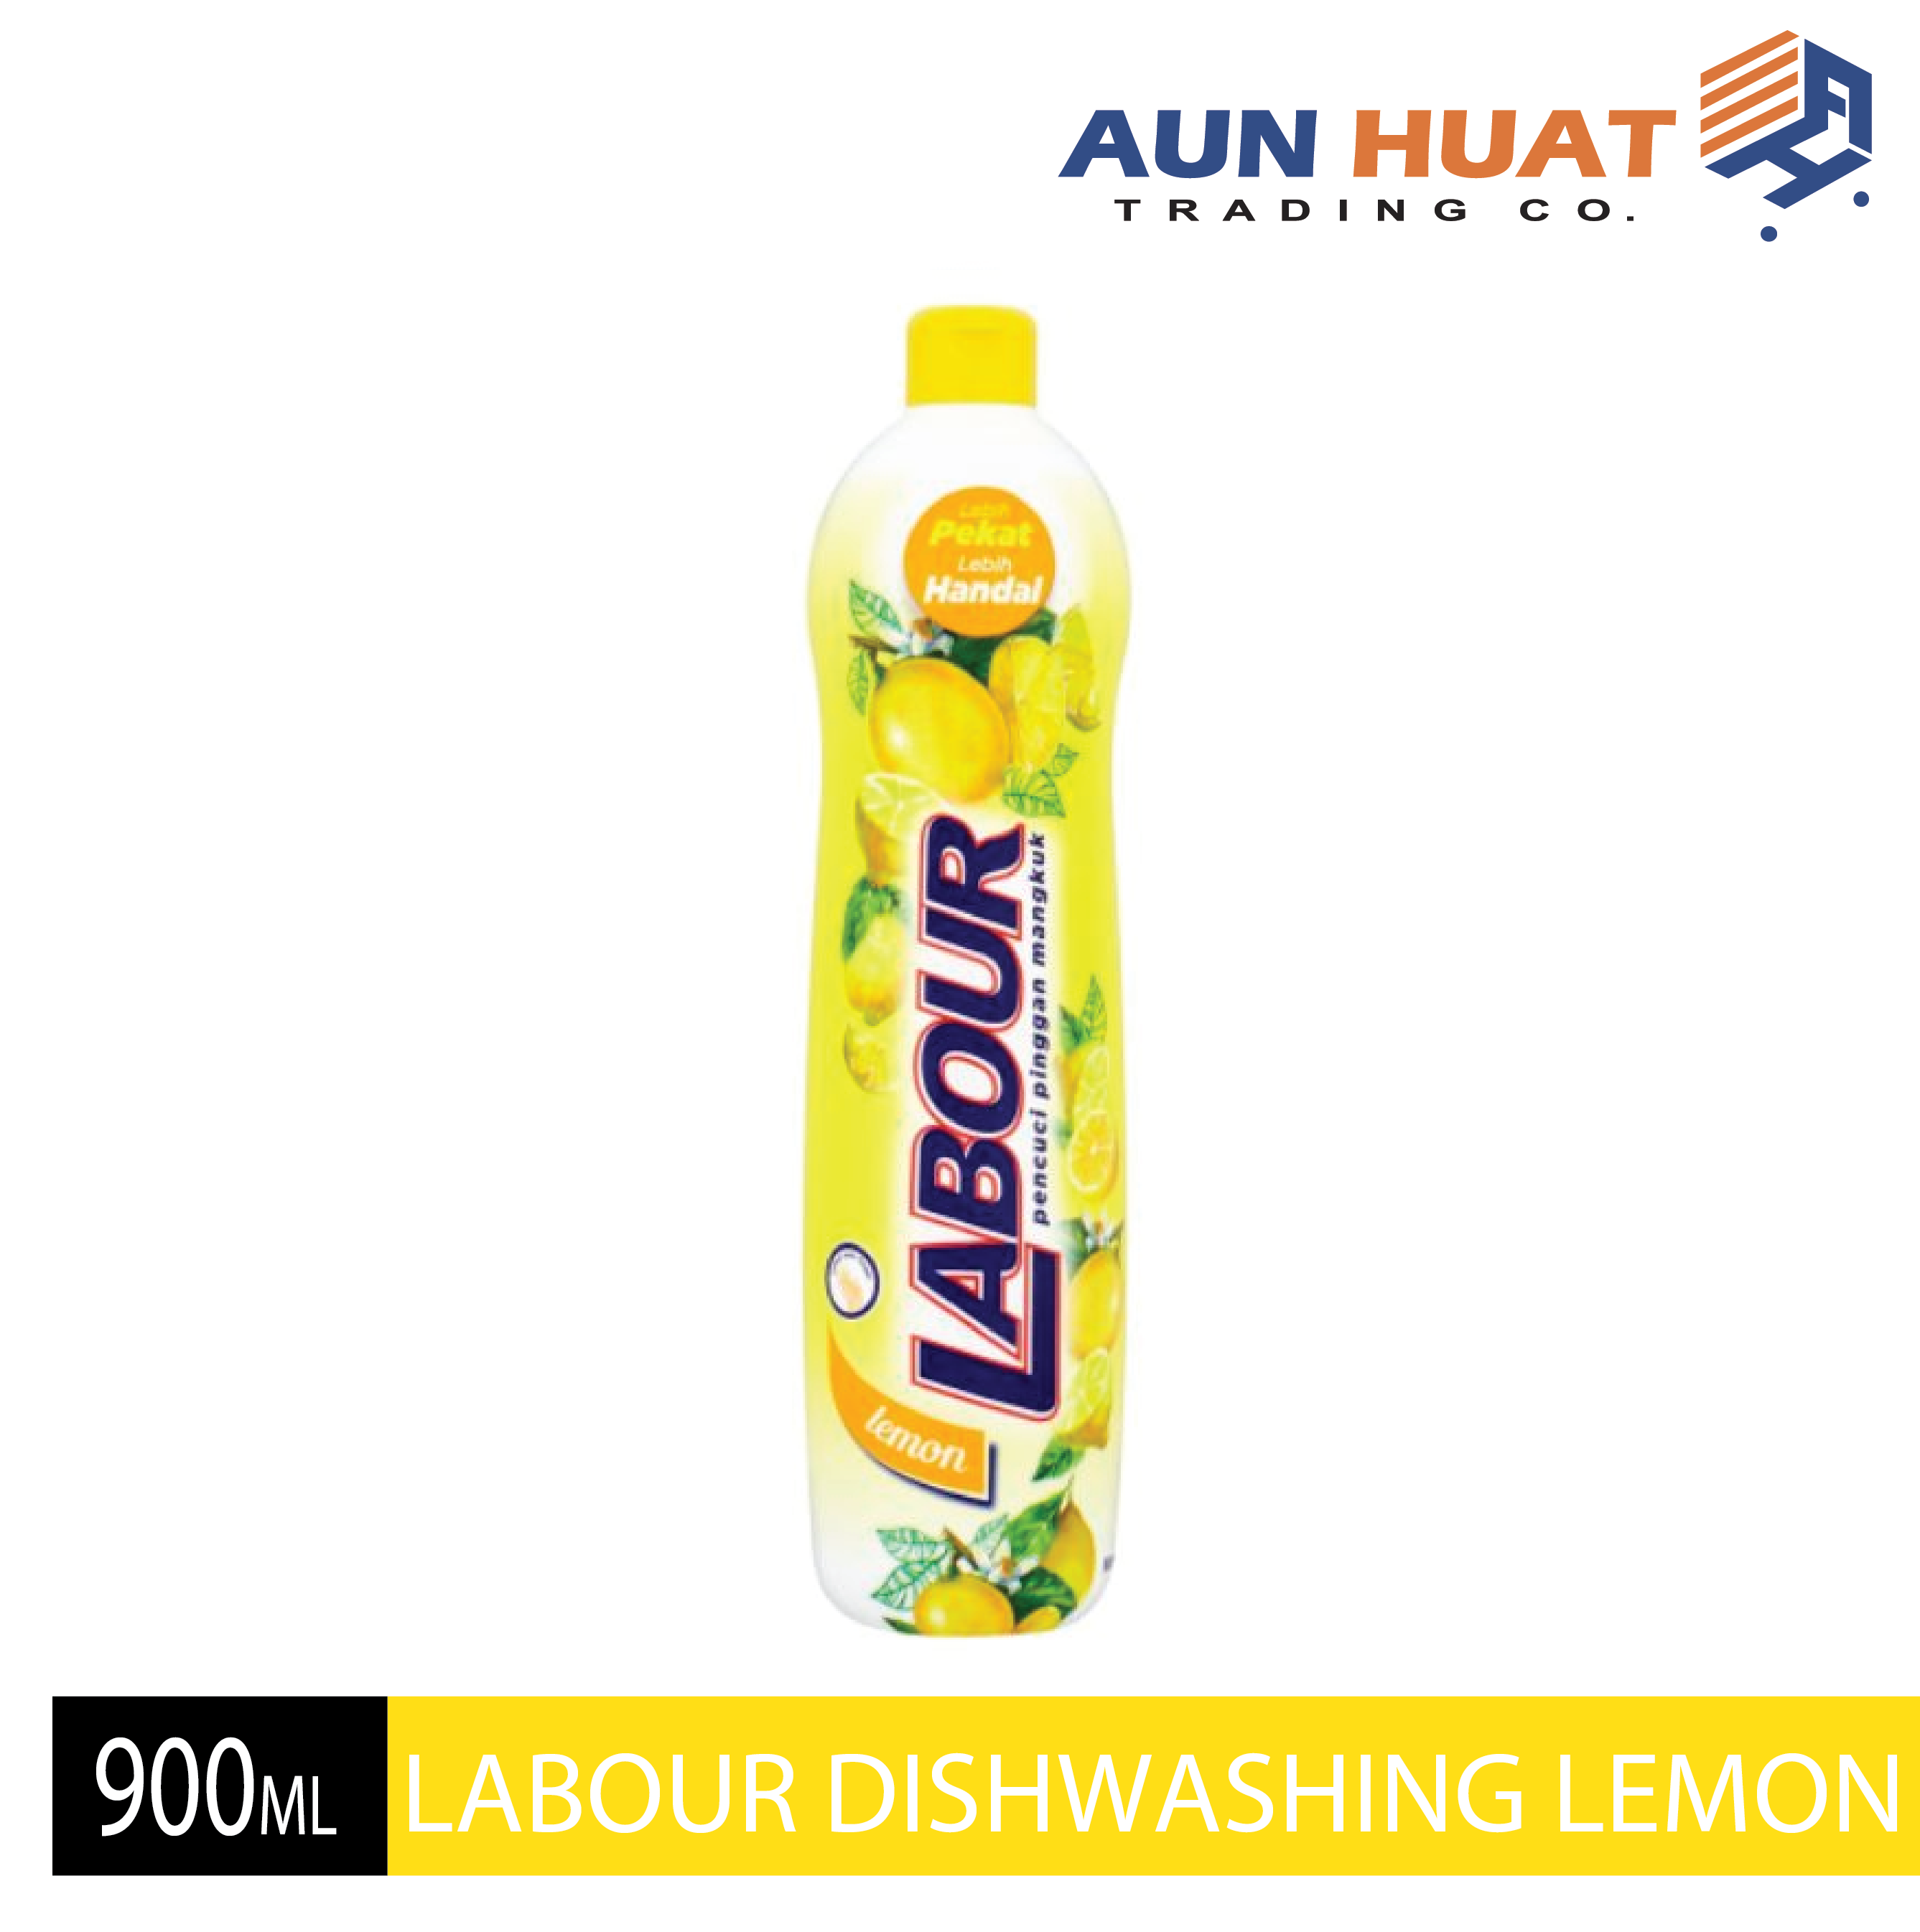 LABOUR DISHWASHING LIQUID LEMON 900ML